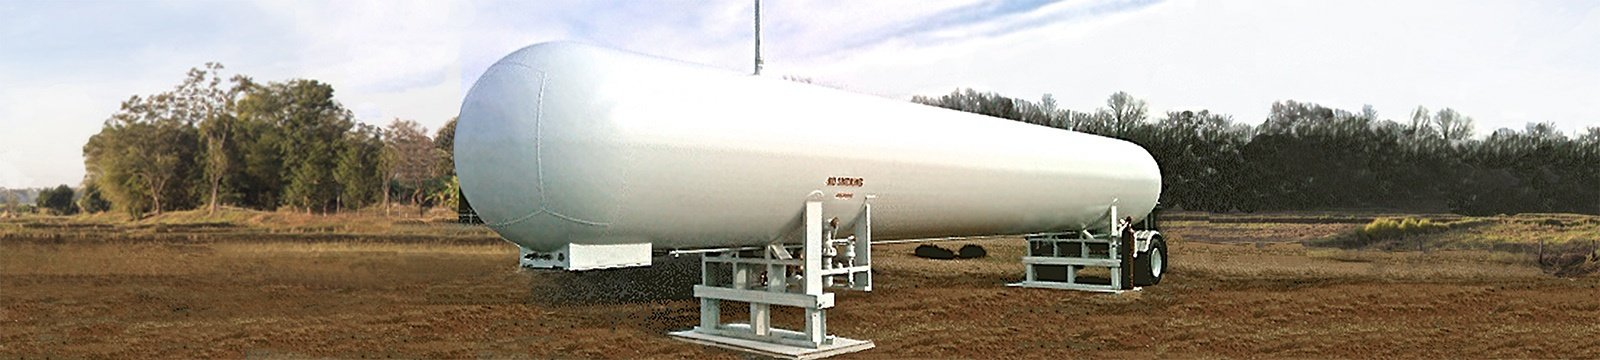 LPG Propane Portapacs - Portable Propane Storage Skid with Built in Trailer Features - for Sale - Lease - Rent - Financing-1.jpg